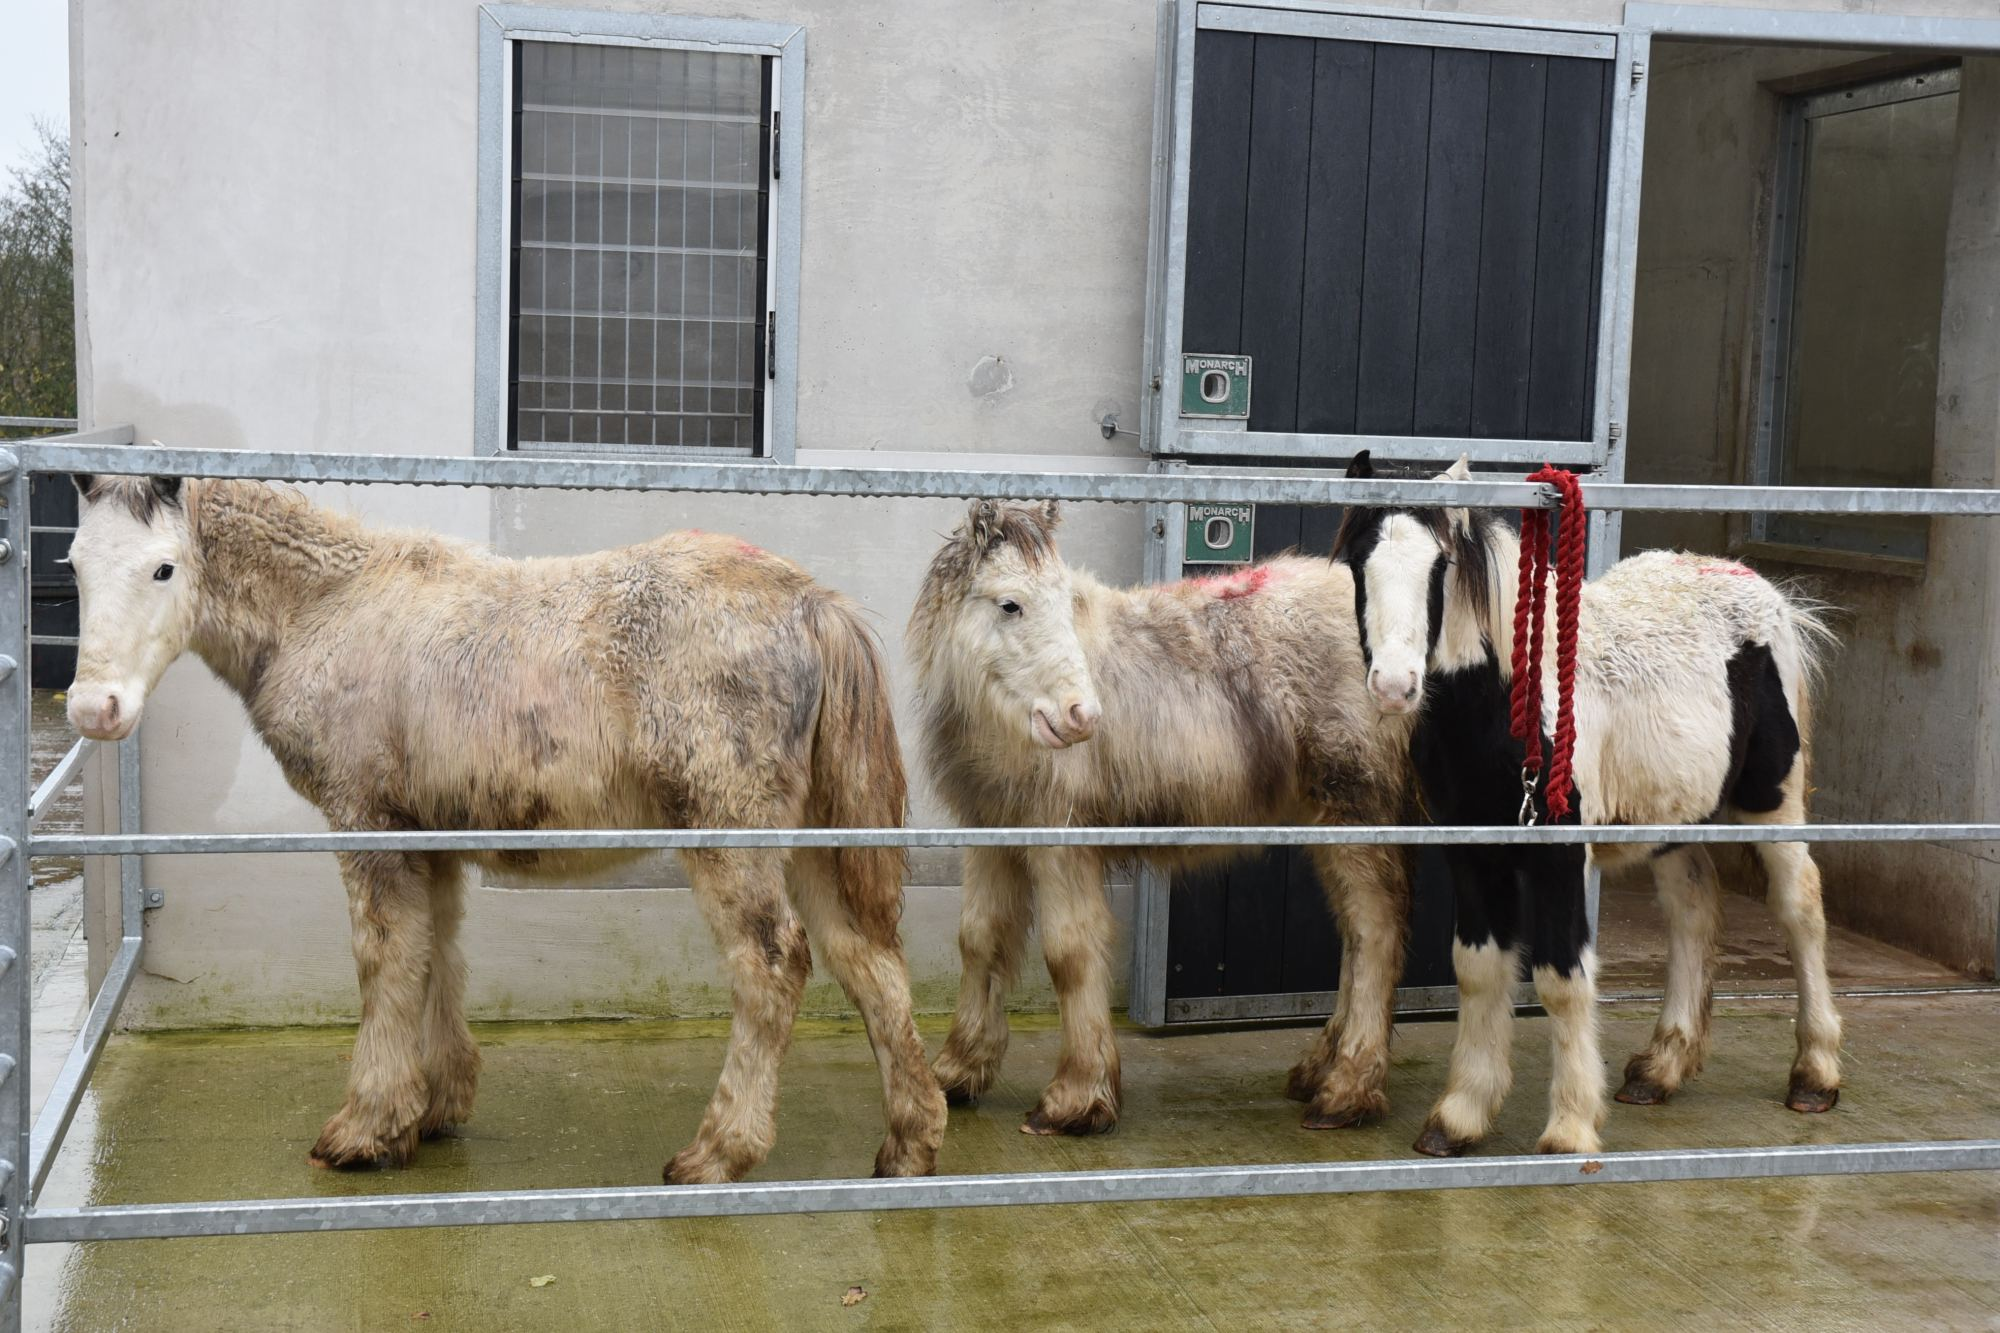 Whispering-Willows-rescued-ponies-cobs-arrival-Beech-Trees-Veterianry-Welfare-Centre-Devon